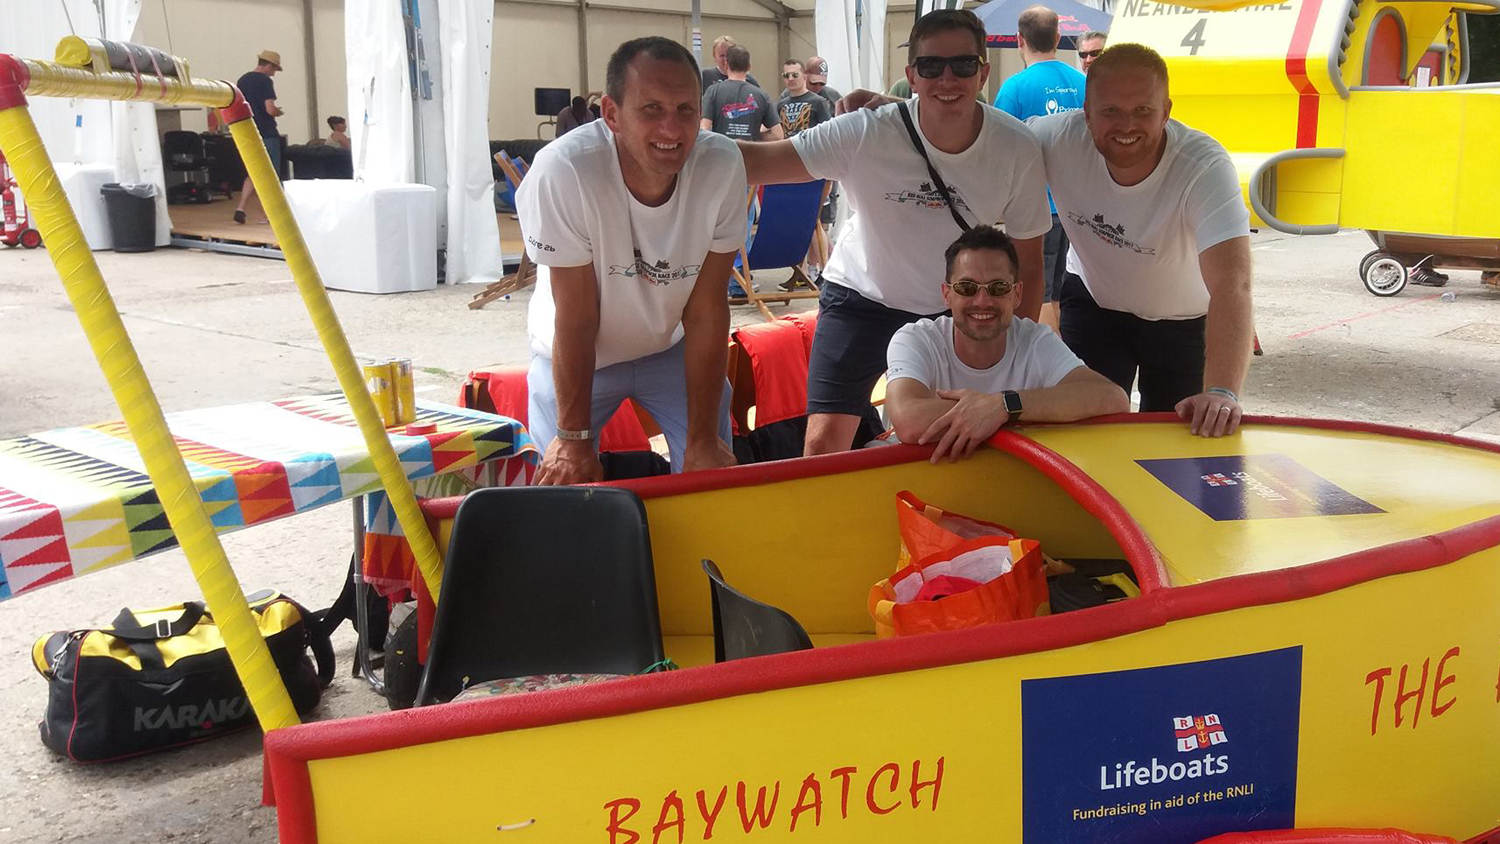 The Red Bull Soapbox team with their Baywatch themed cart